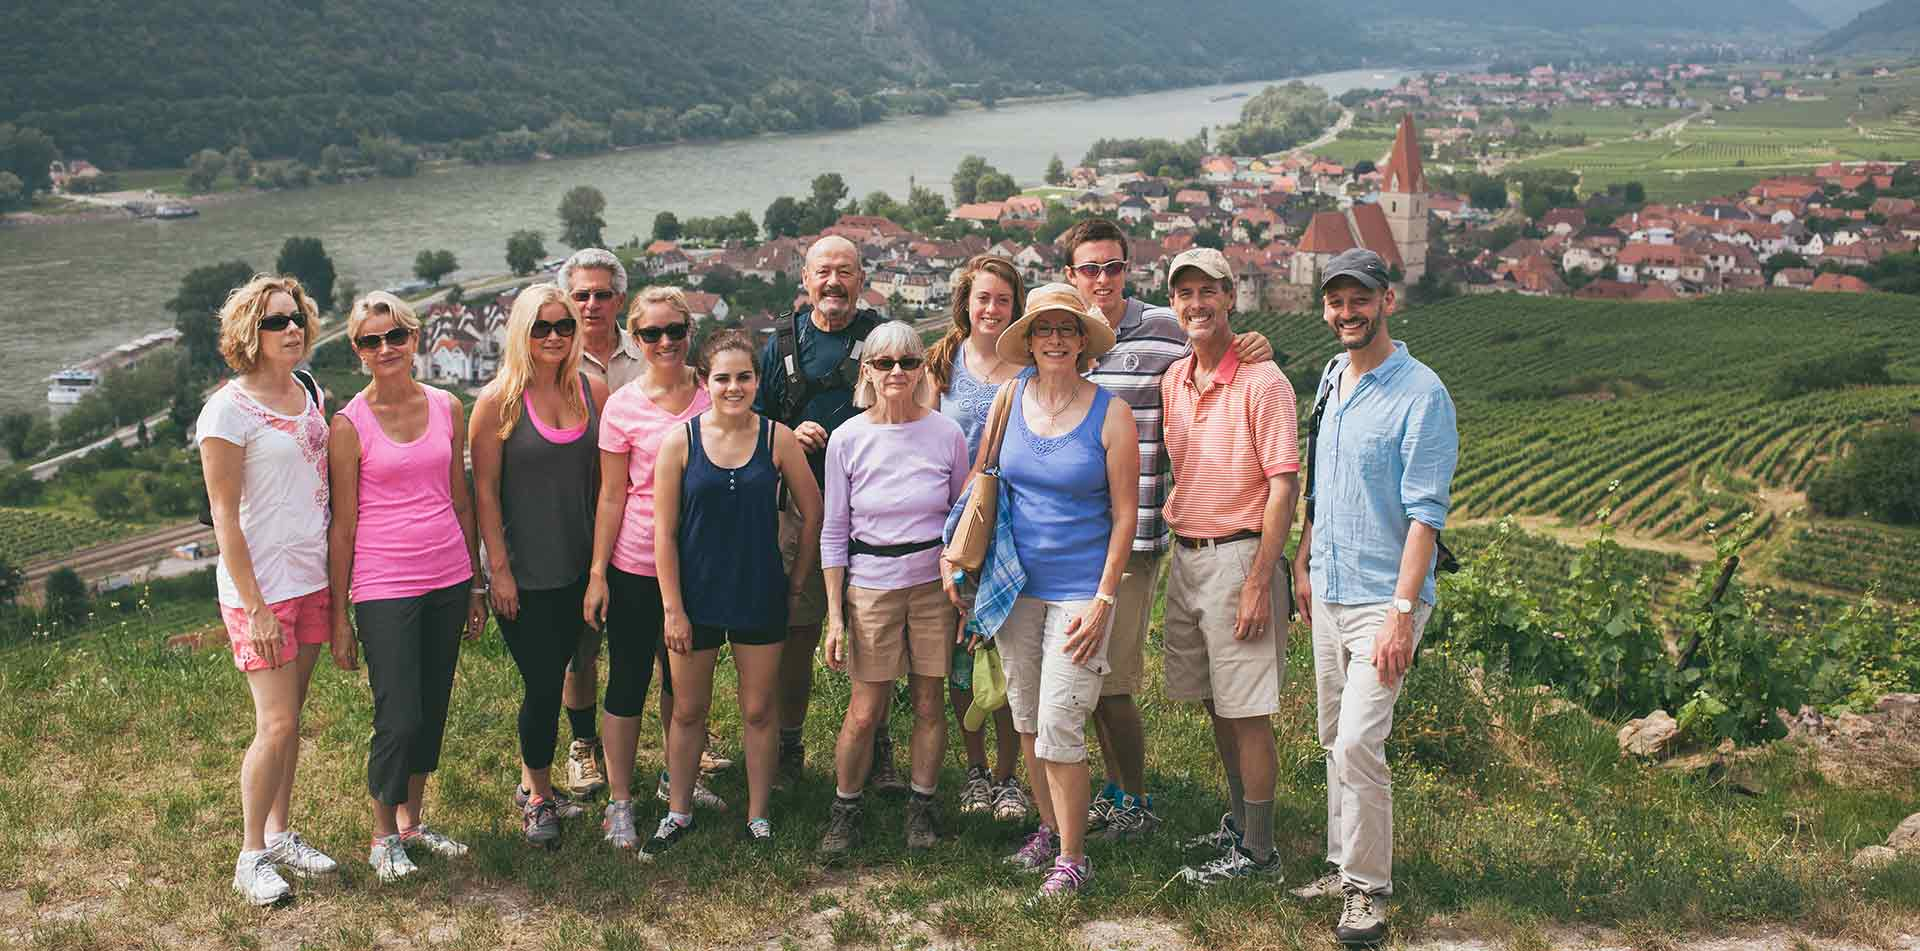 Europe Czech Republic group of travelers posing for photo on village hillside - luxury vacation destinations